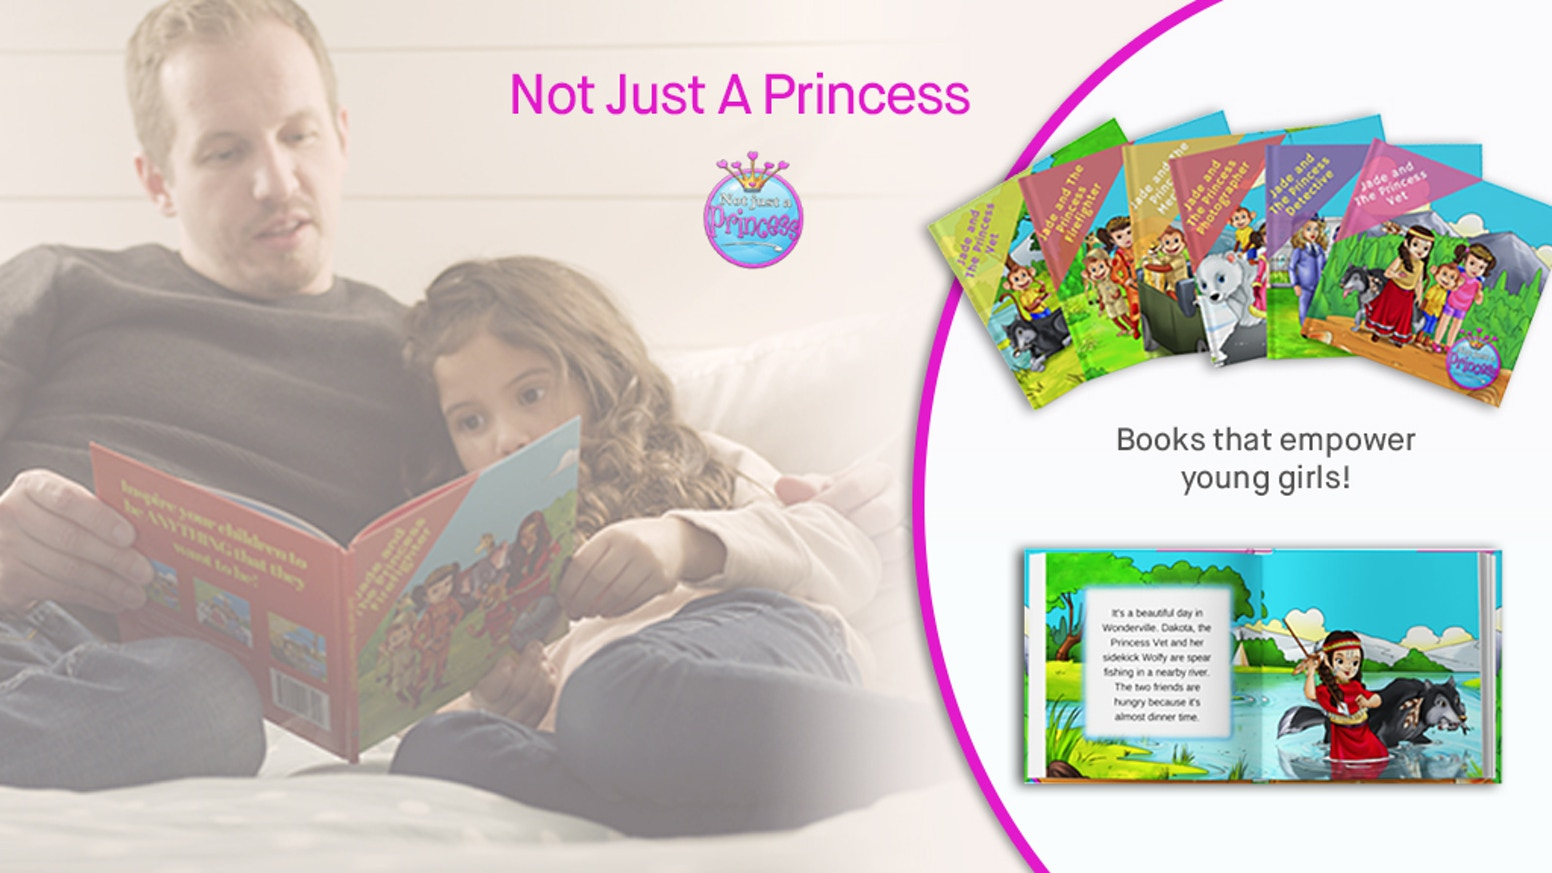 An animated series of career princesses to empower young girls to follow their dreams and be whatever they want to be!